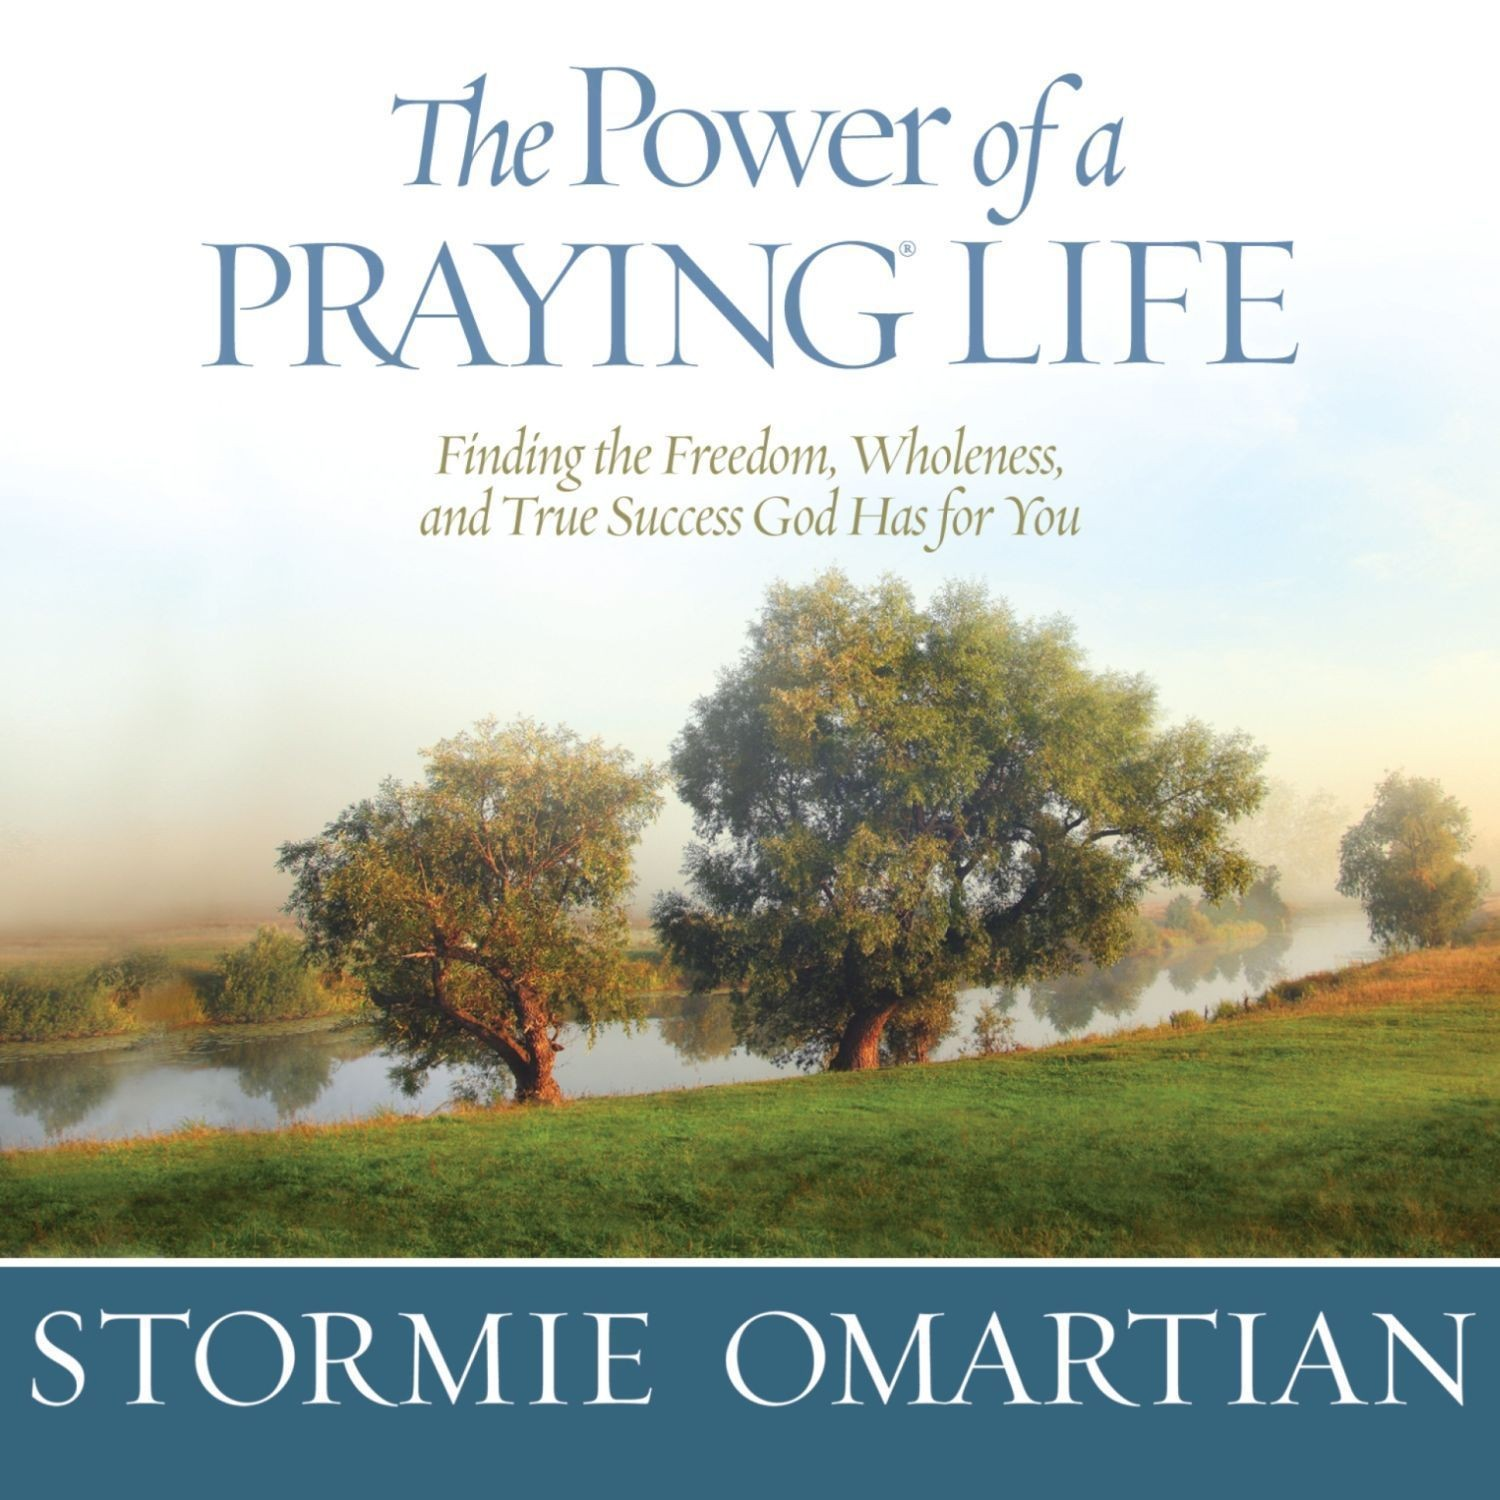 Printable The Power of a Praying Life: Finding the Freedom, Wholeness, and True Success God Has for You Audiobook Cover Art